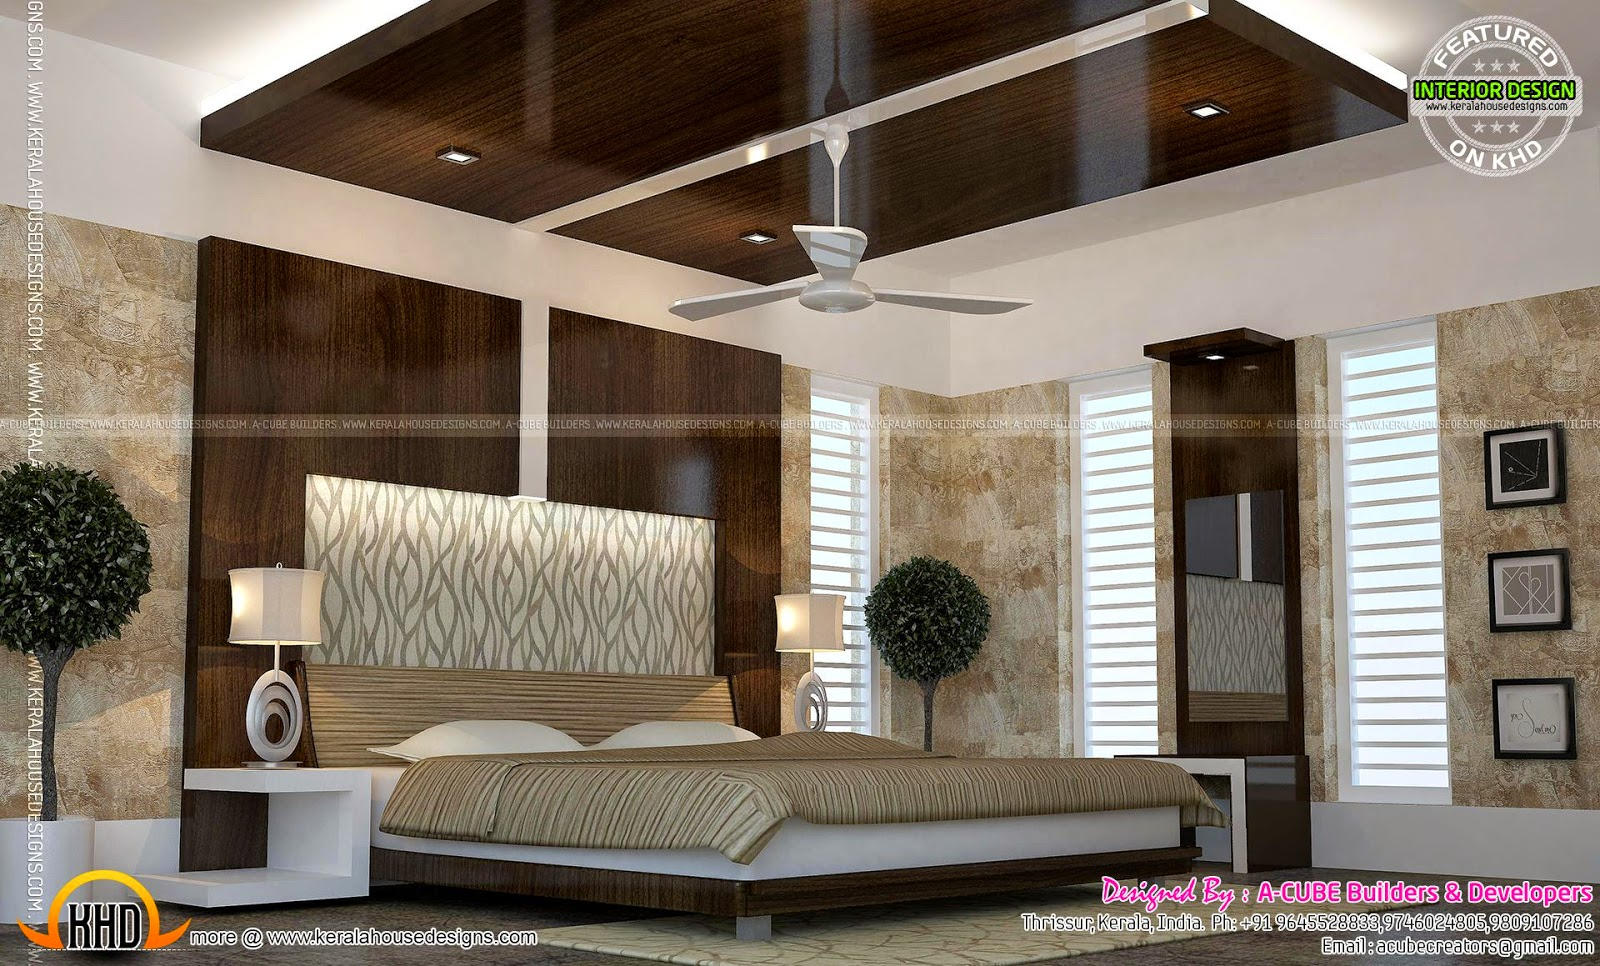 Kerala interior design ideas kerala home design and for How to design house interior